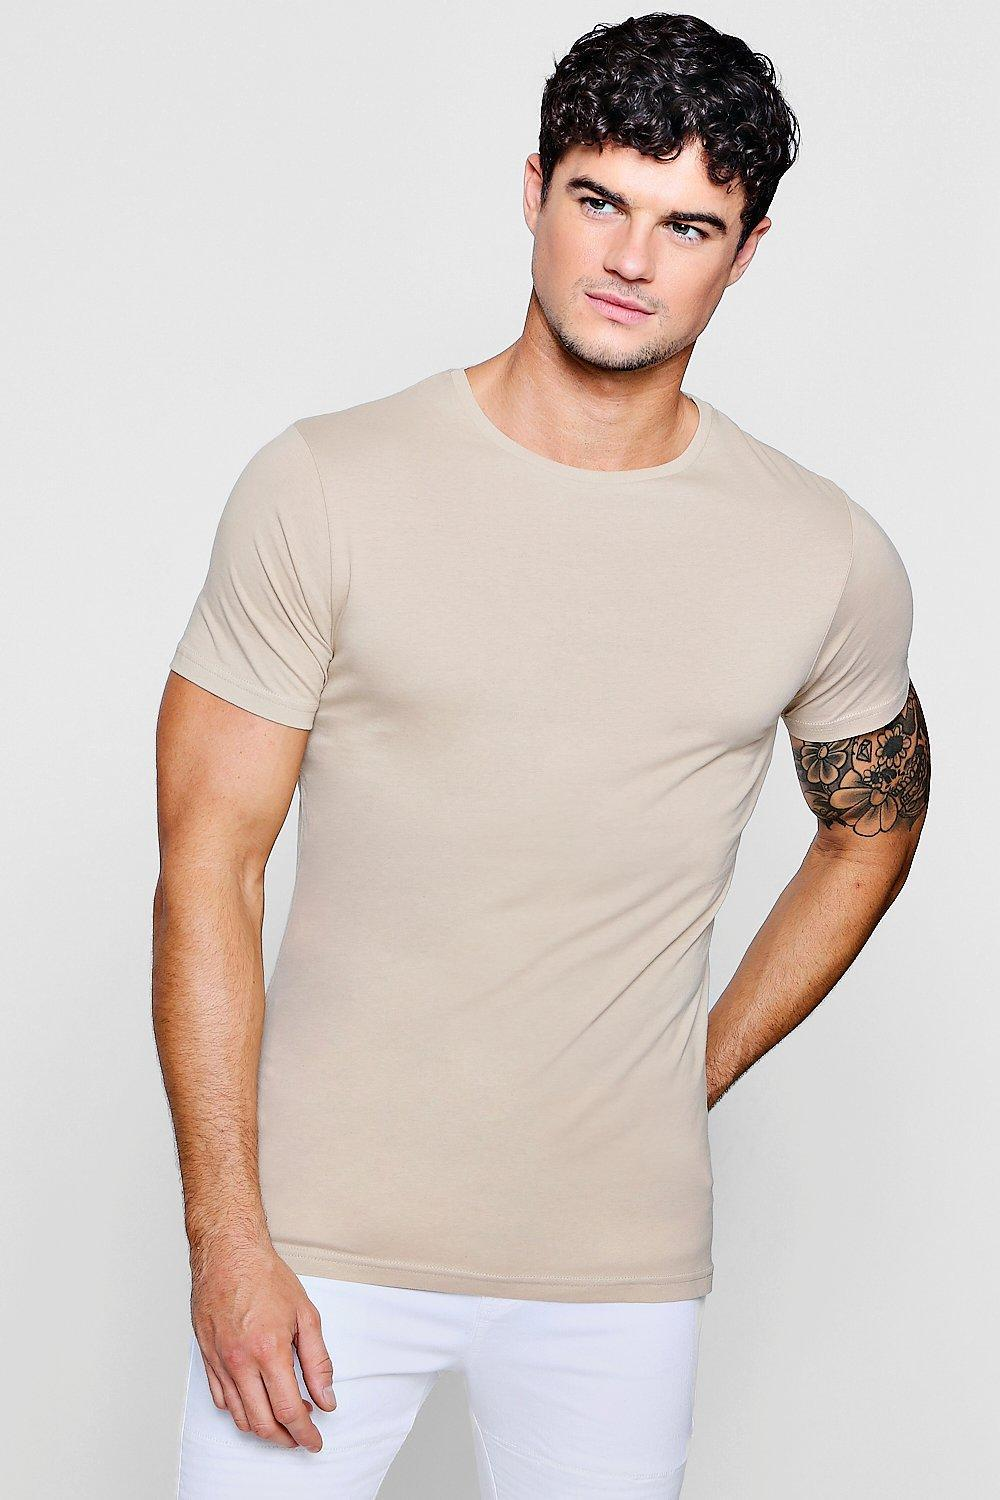 0b205939 Gallery. Previously sold at: boohooman · Men's Longline T Shirts ...